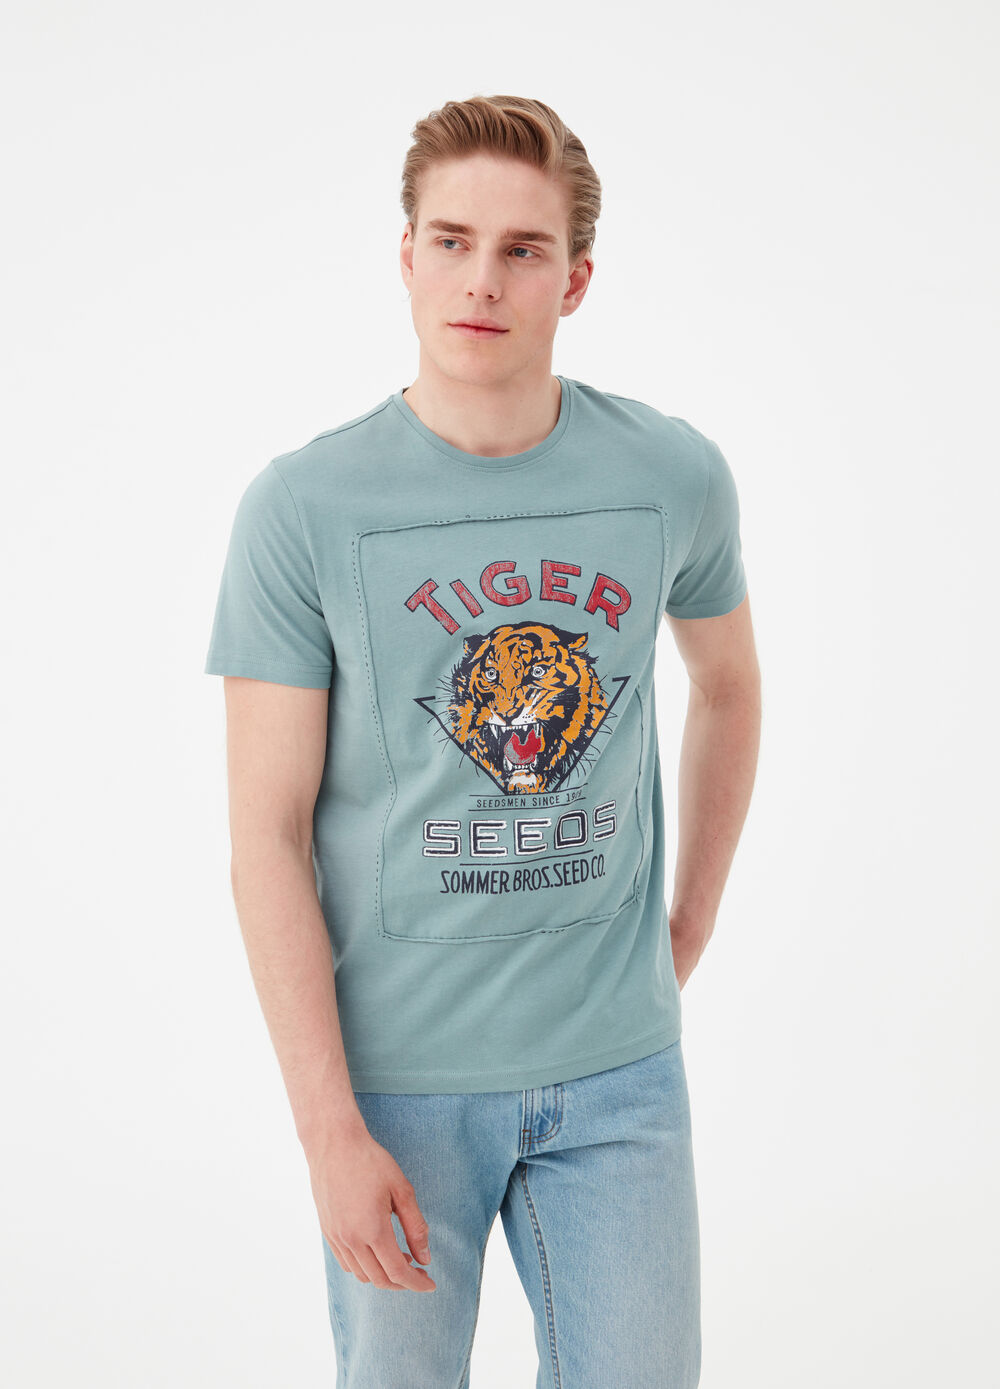 100% cotton T-shirt with hand-stitched insert and tiger